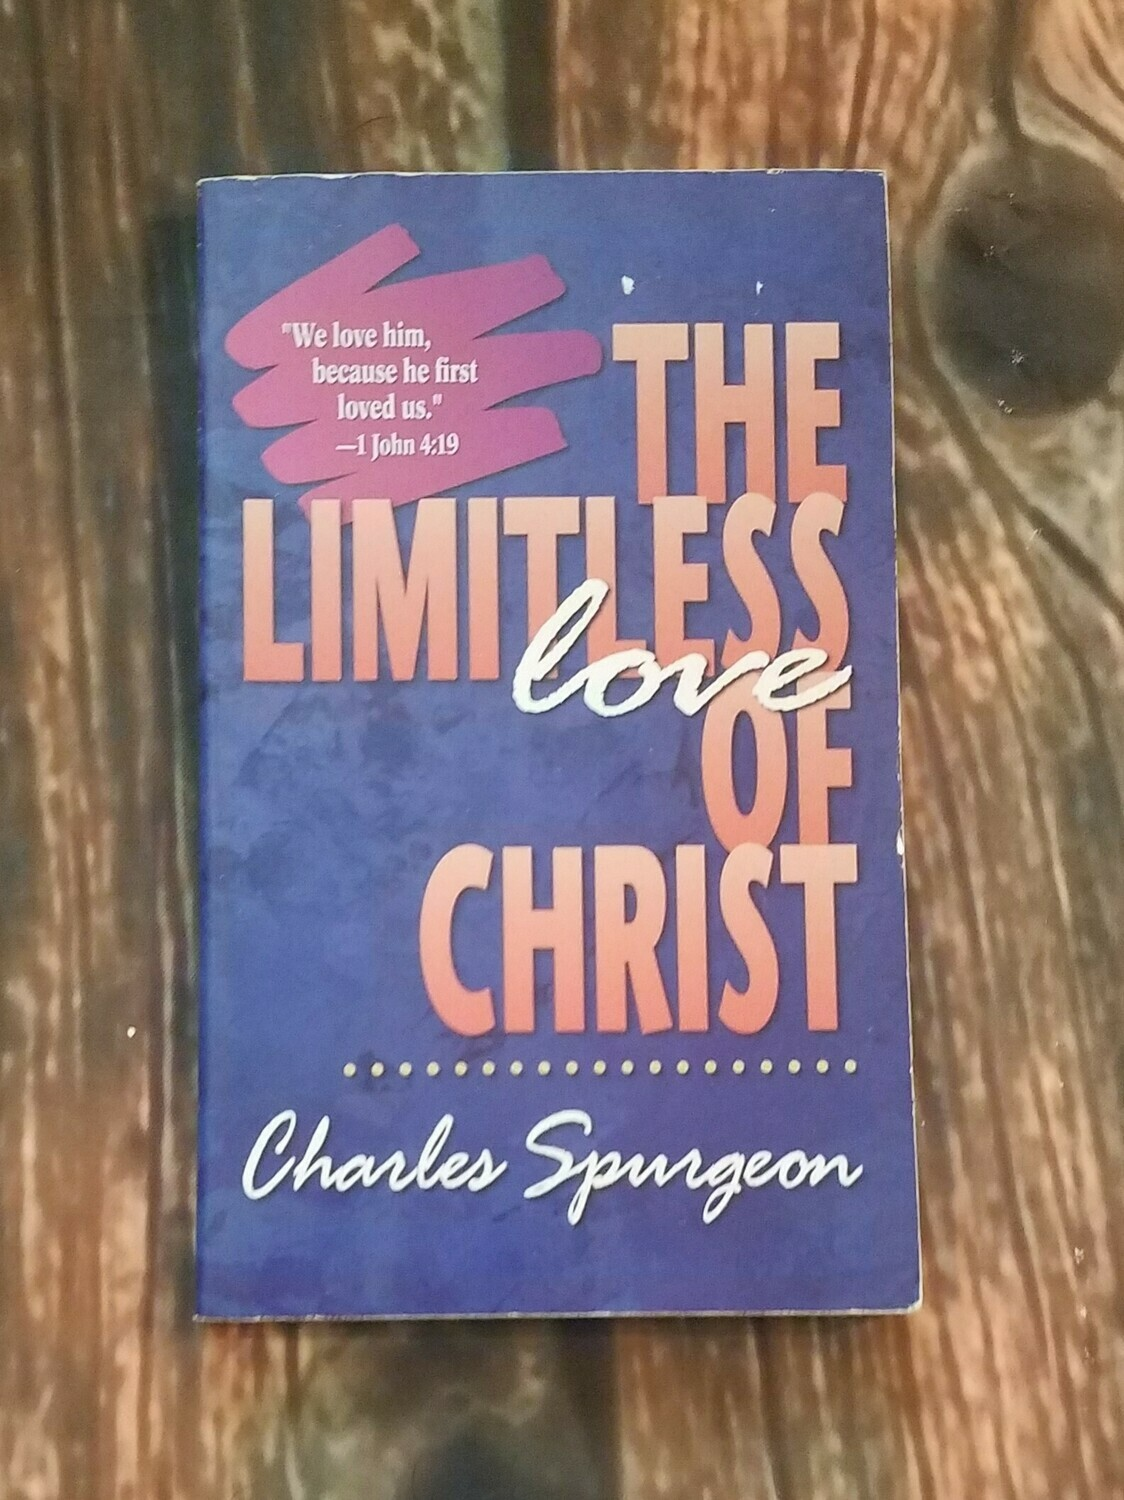 The Limitless Love of Christ by Charles Spurgeon